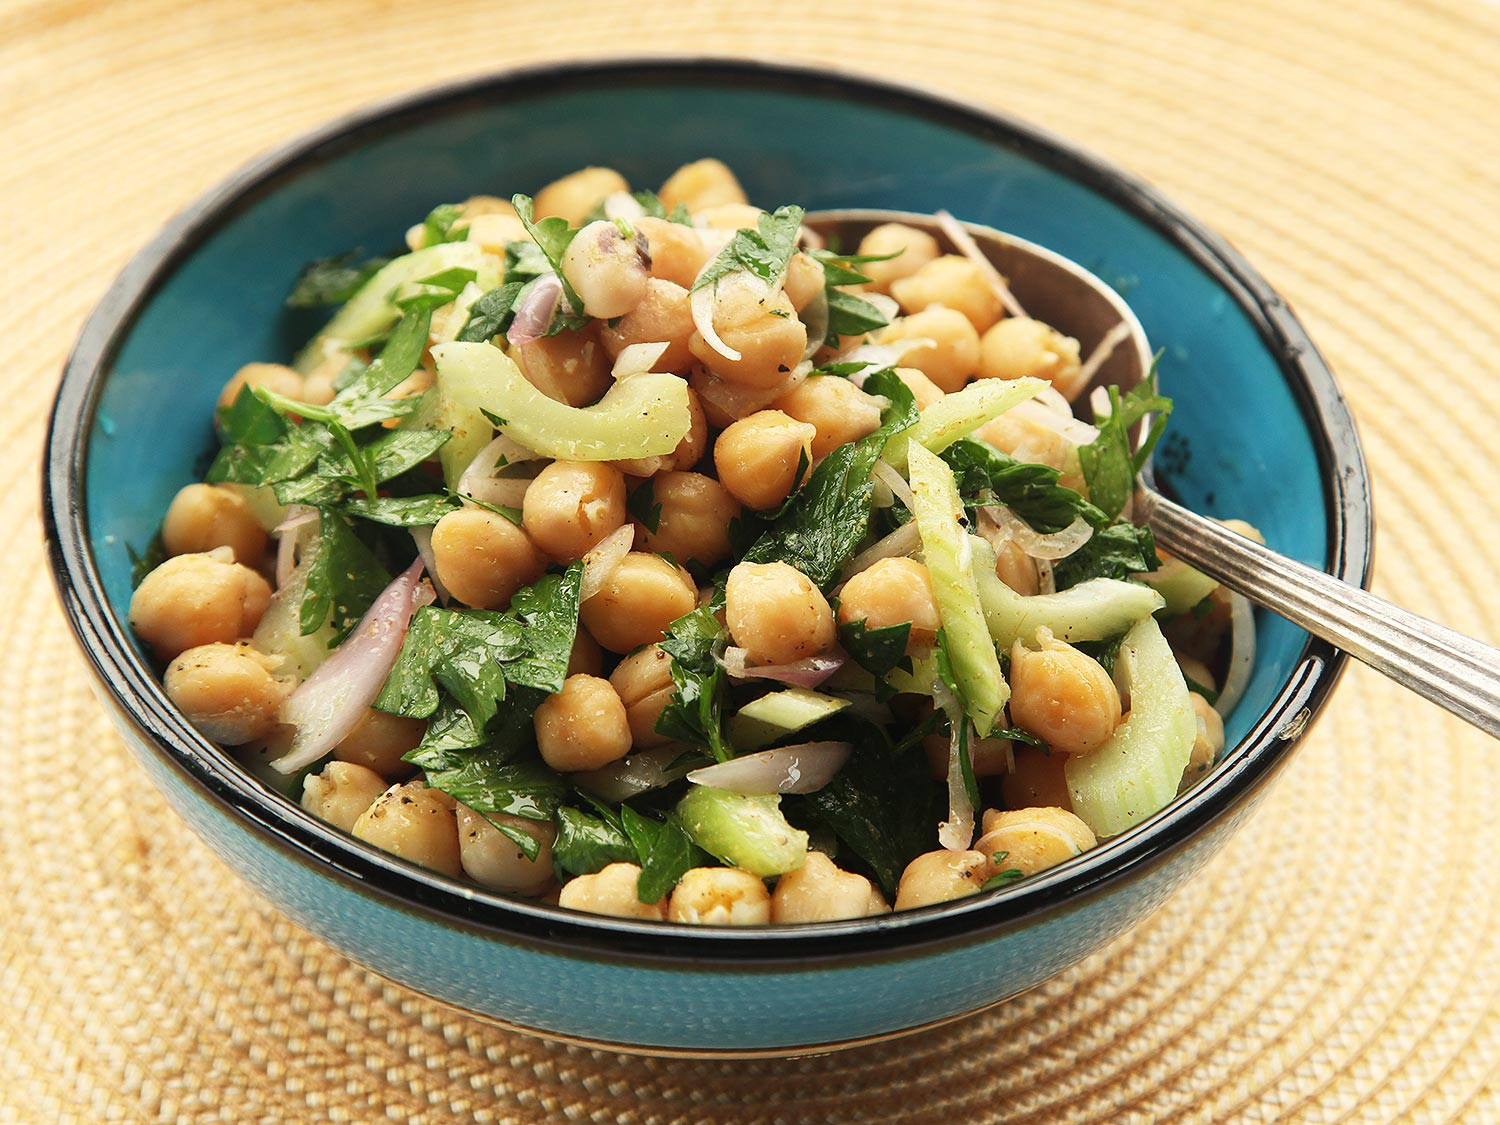 Chickpea Salad Recipes  Vegan Meal Plan A Week of Delicious Breakfasts Lunches